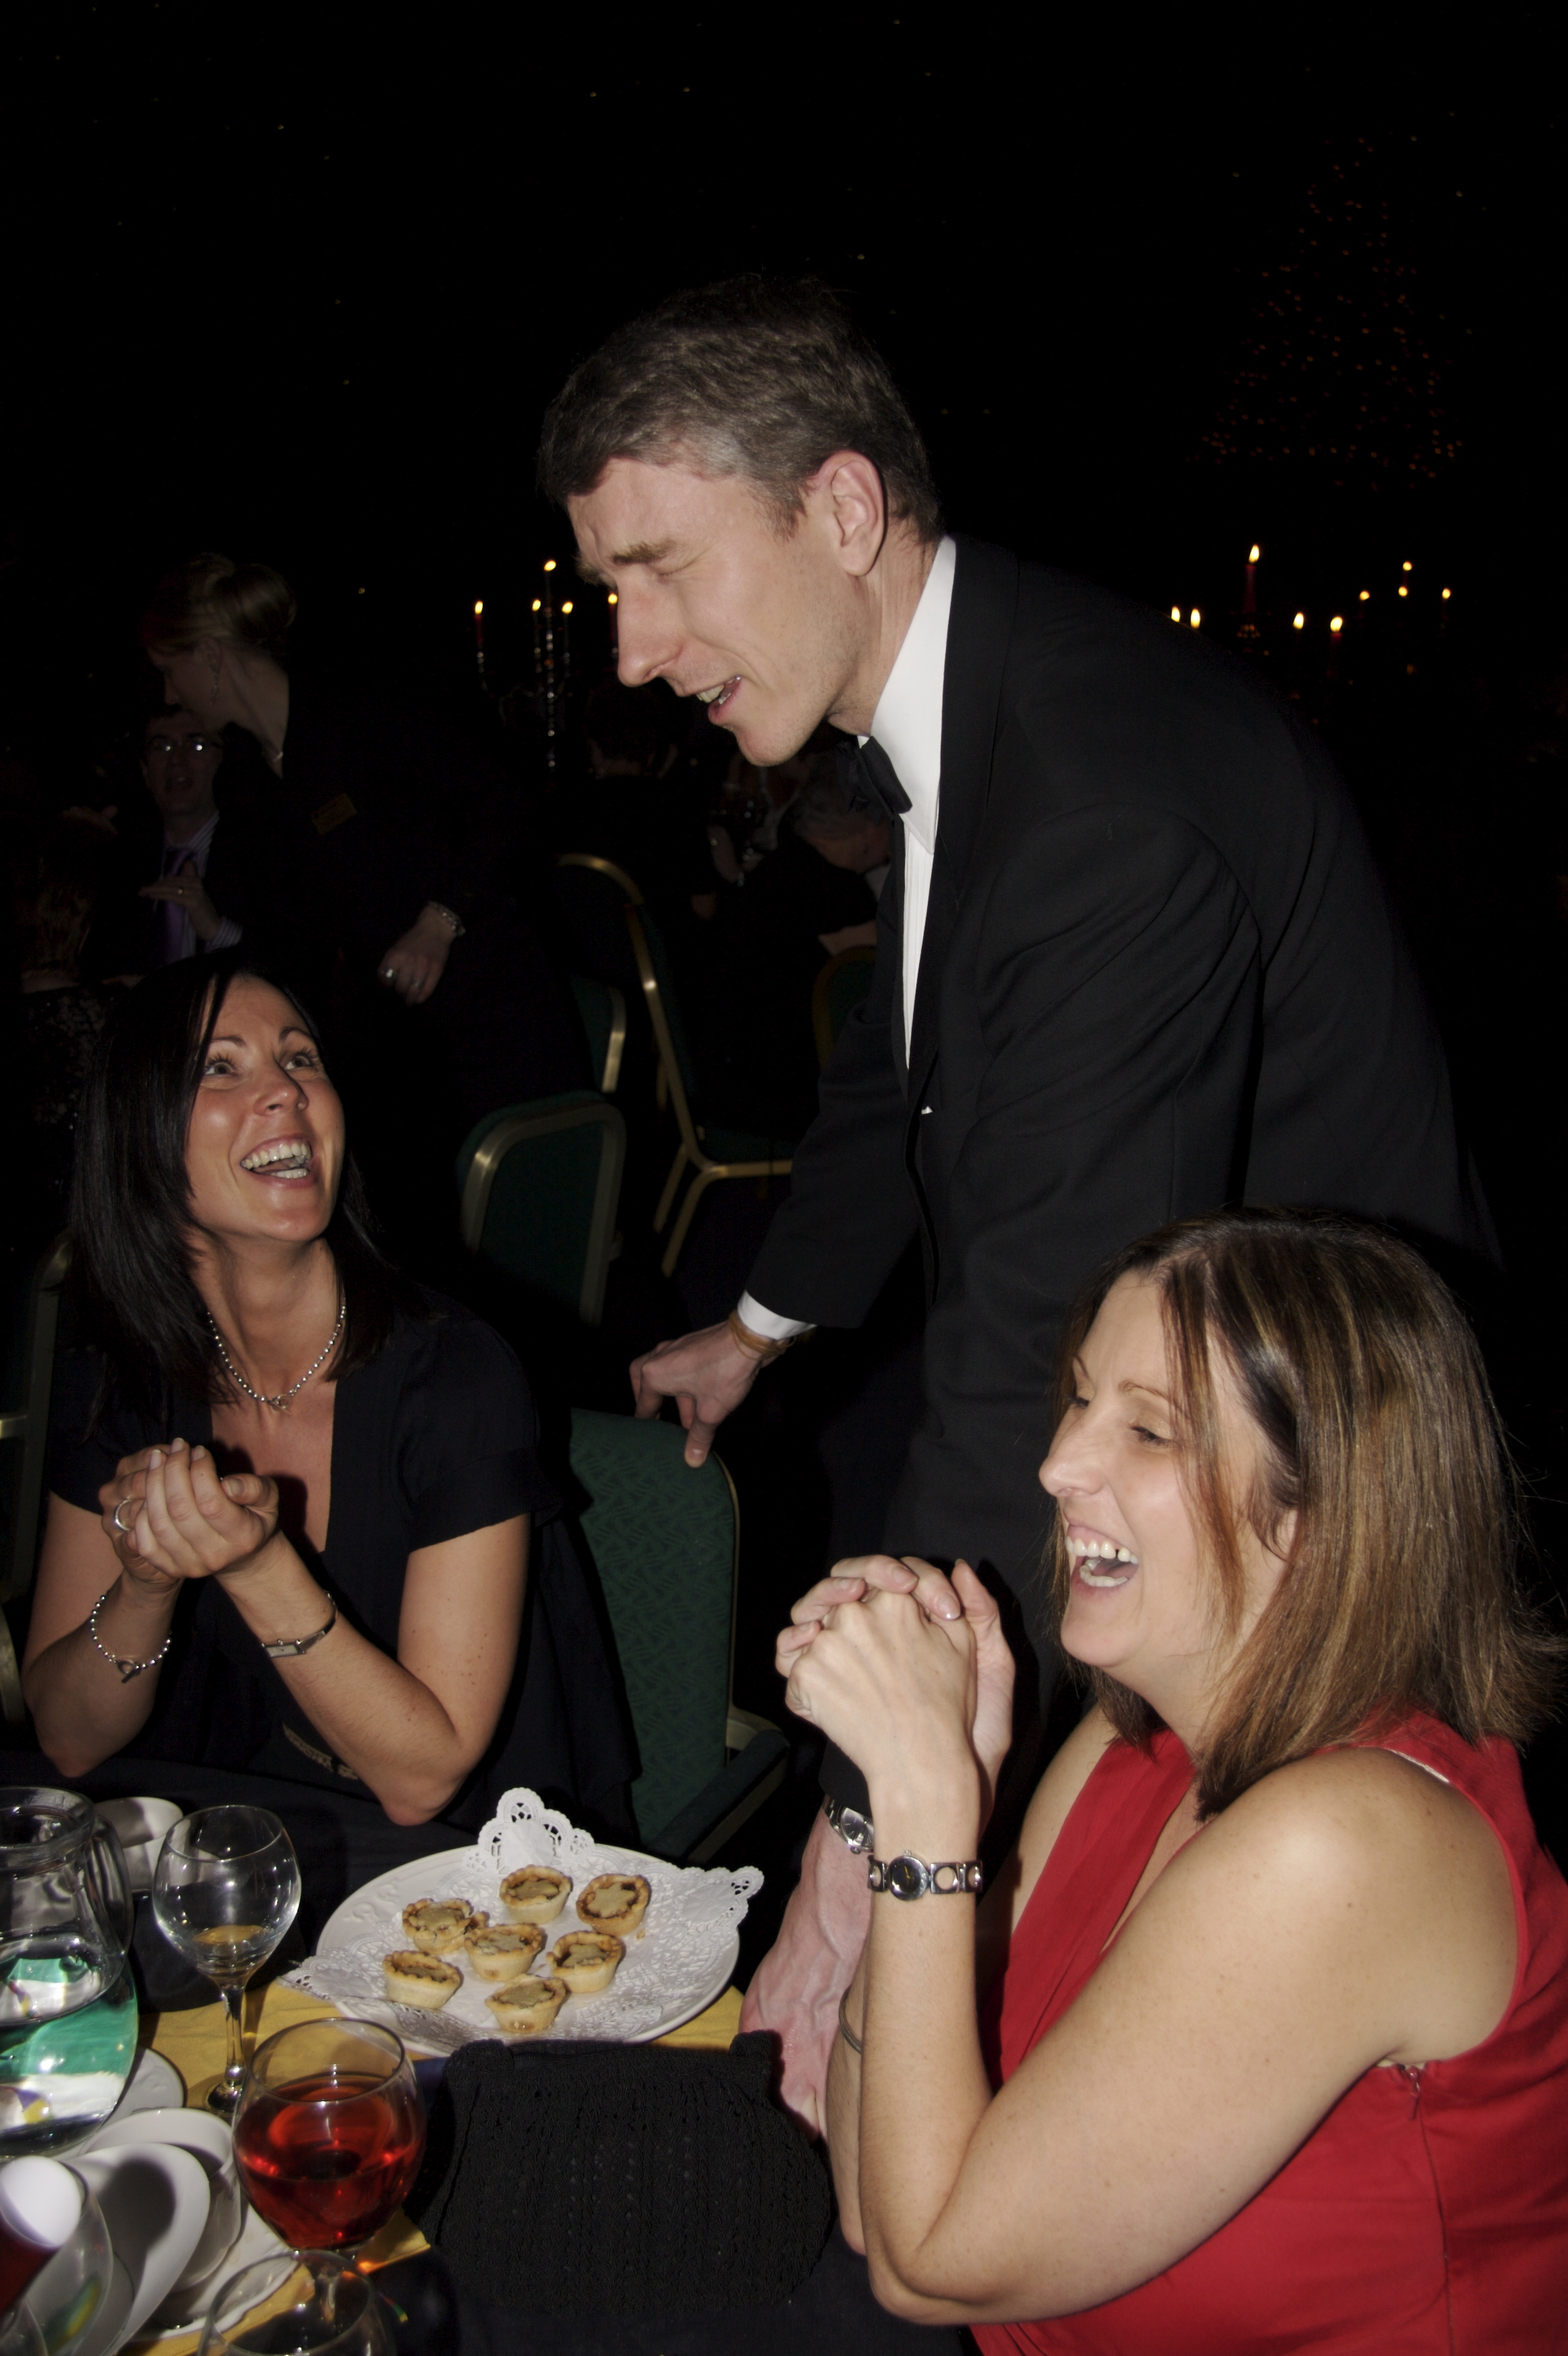 Scotland magician Ian Kendall astonishing guests at a dinner